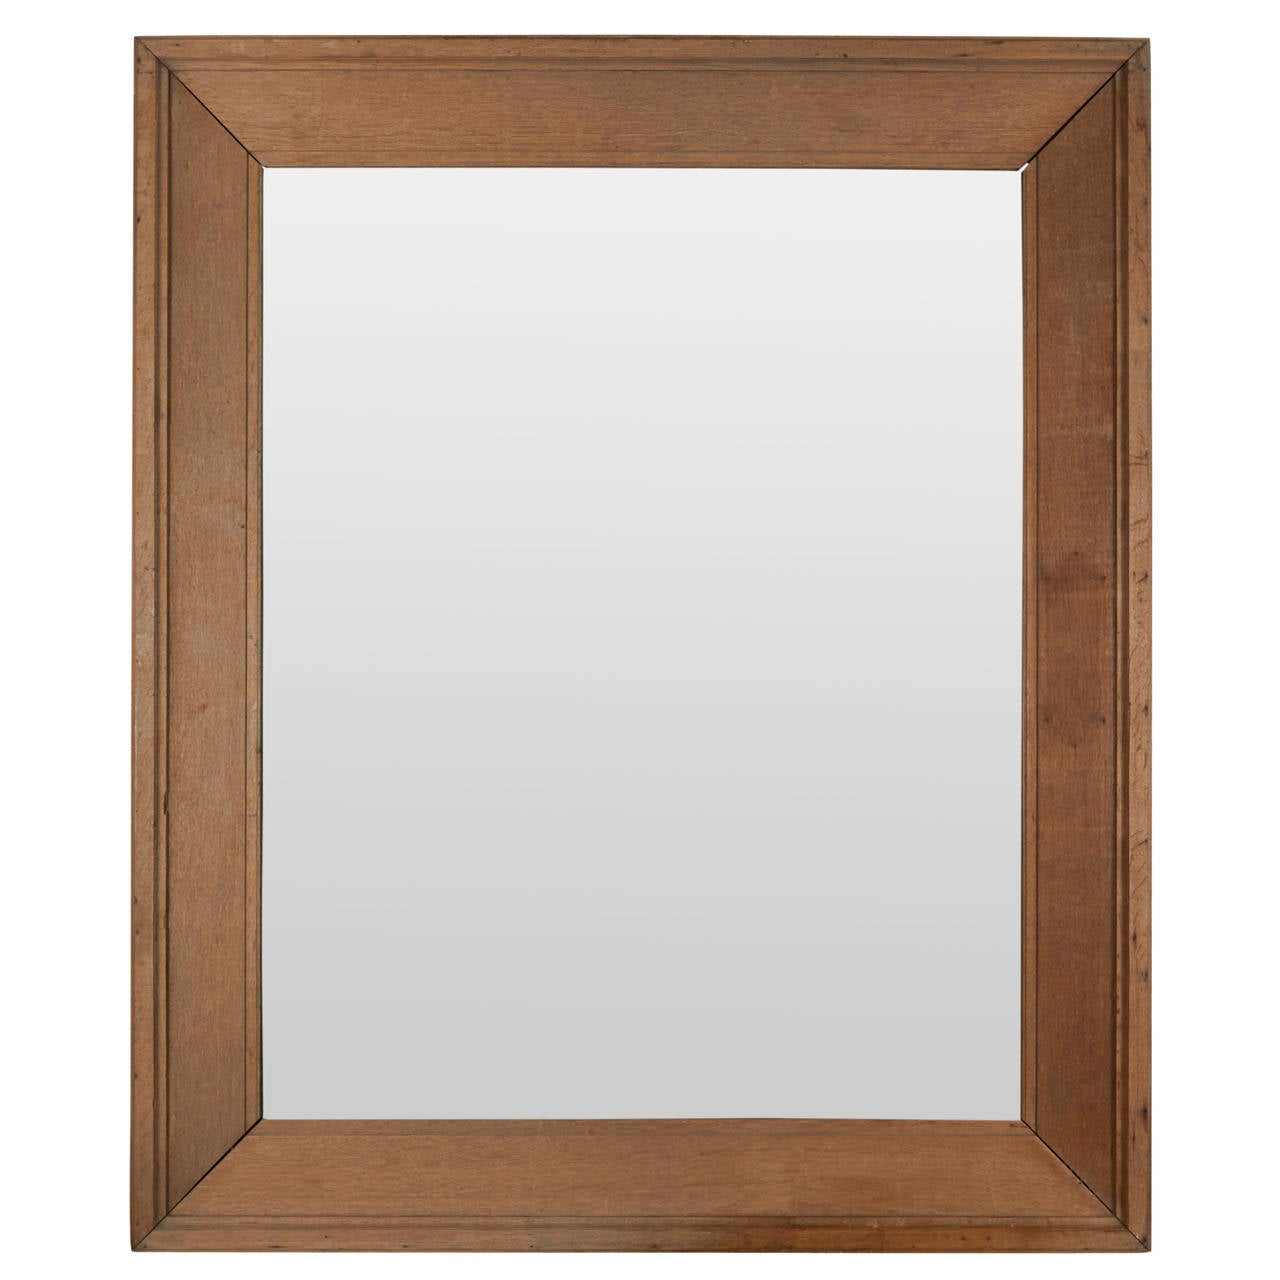 Xx large oak mirror with antique glass at 1stdibs for Tall glass mirror